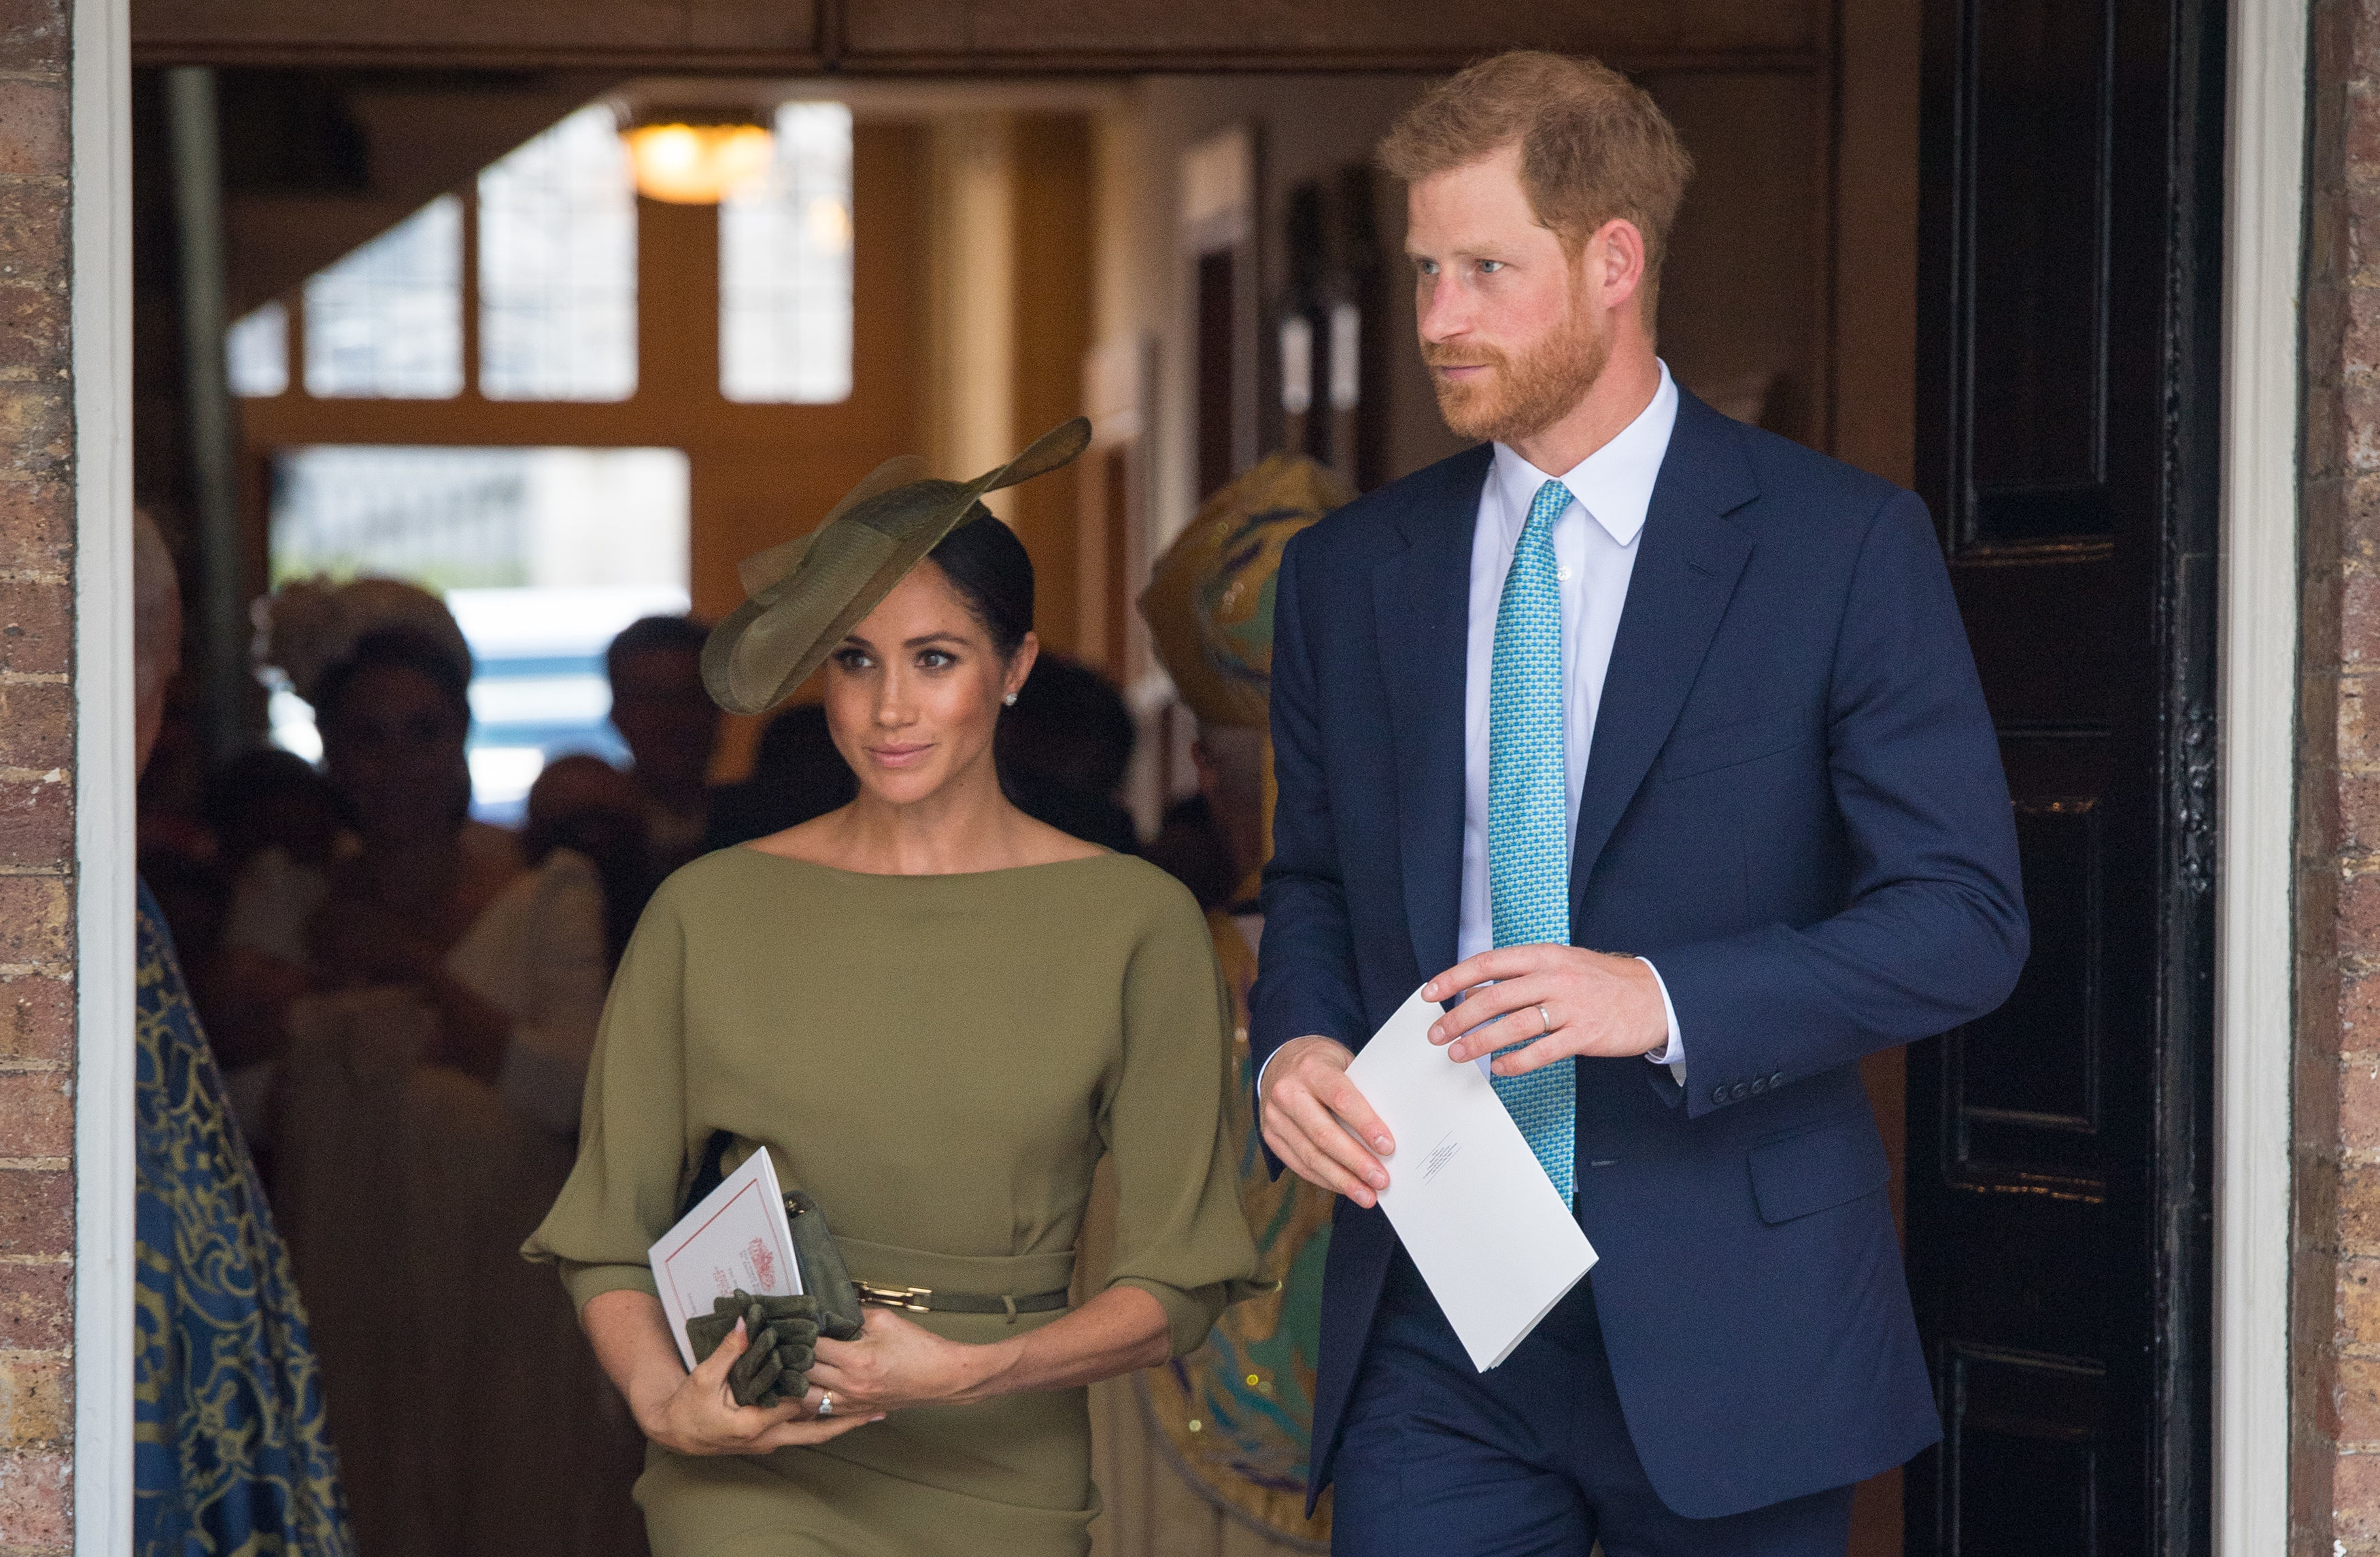 christening-of-prince-louis-of-cambridge-at-st-jamess-palace-5